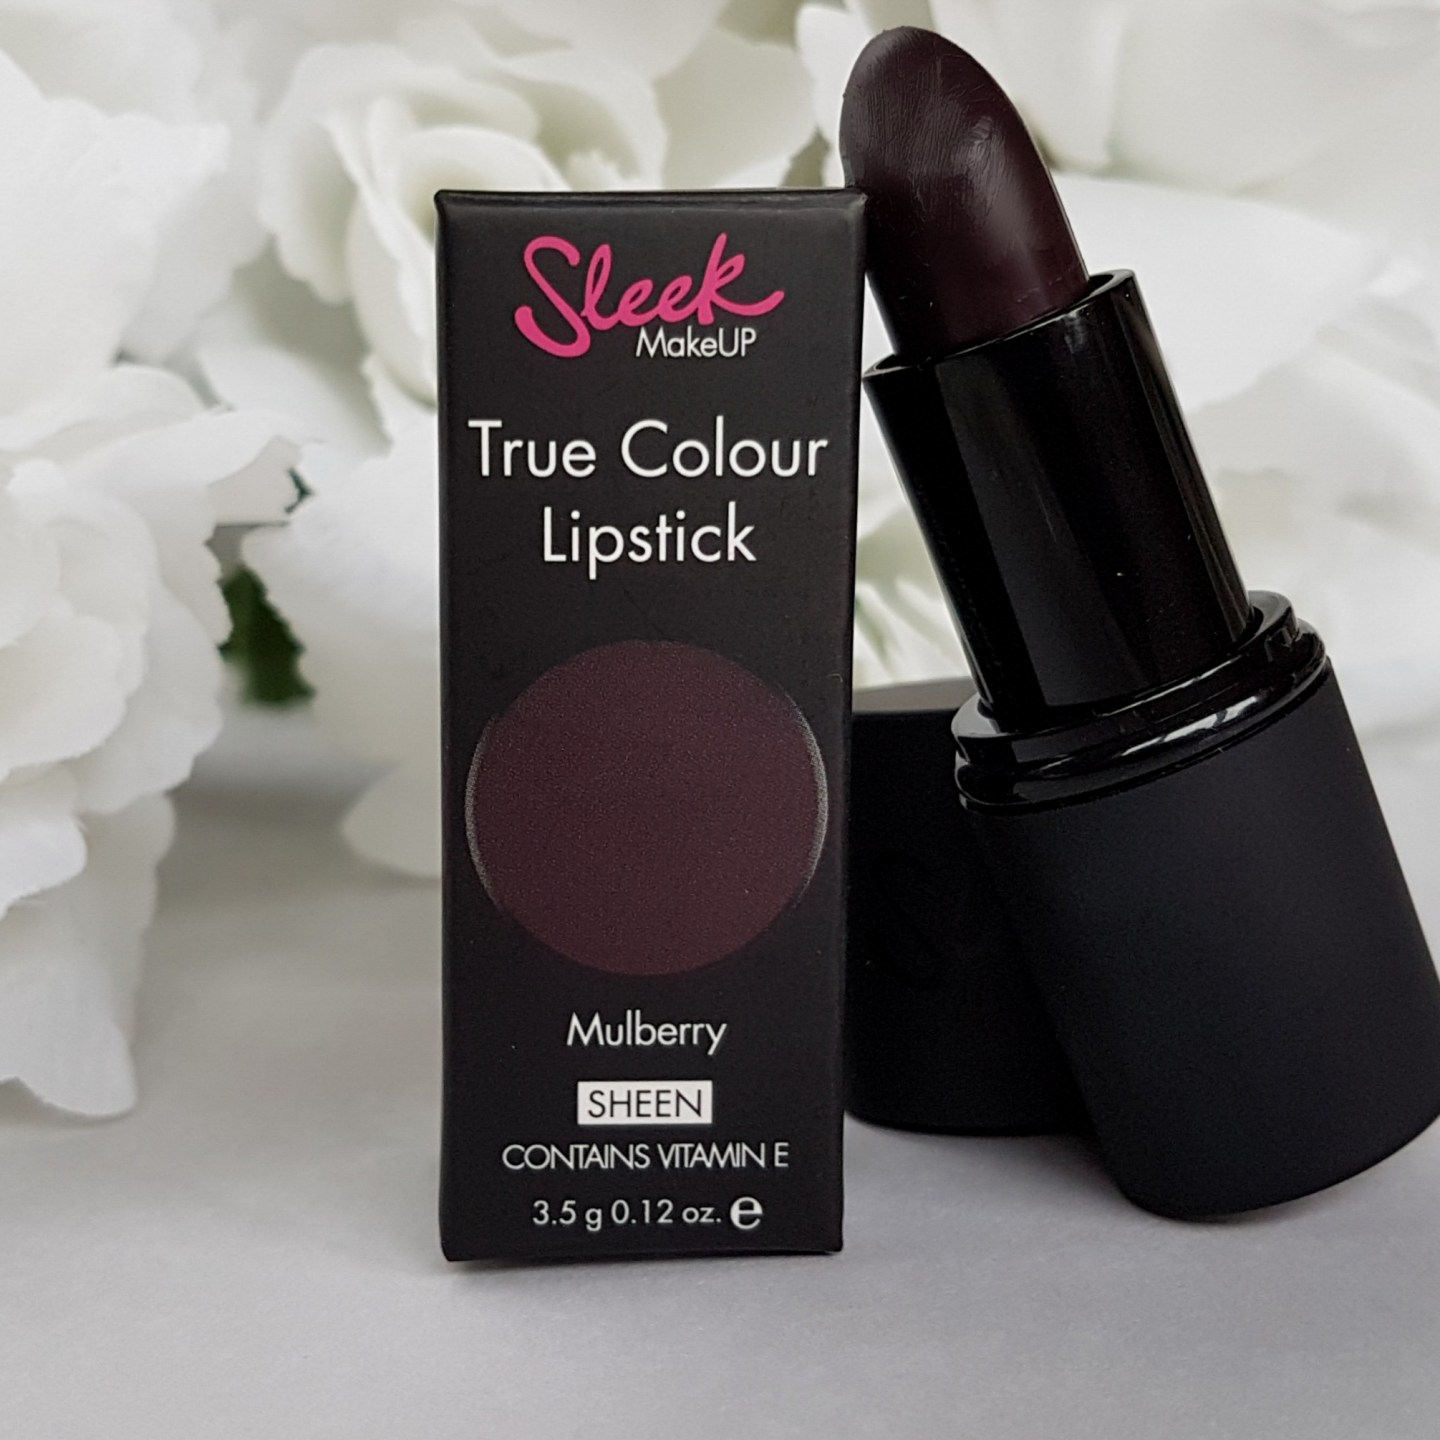 Sleek True Colour Lipstick Review